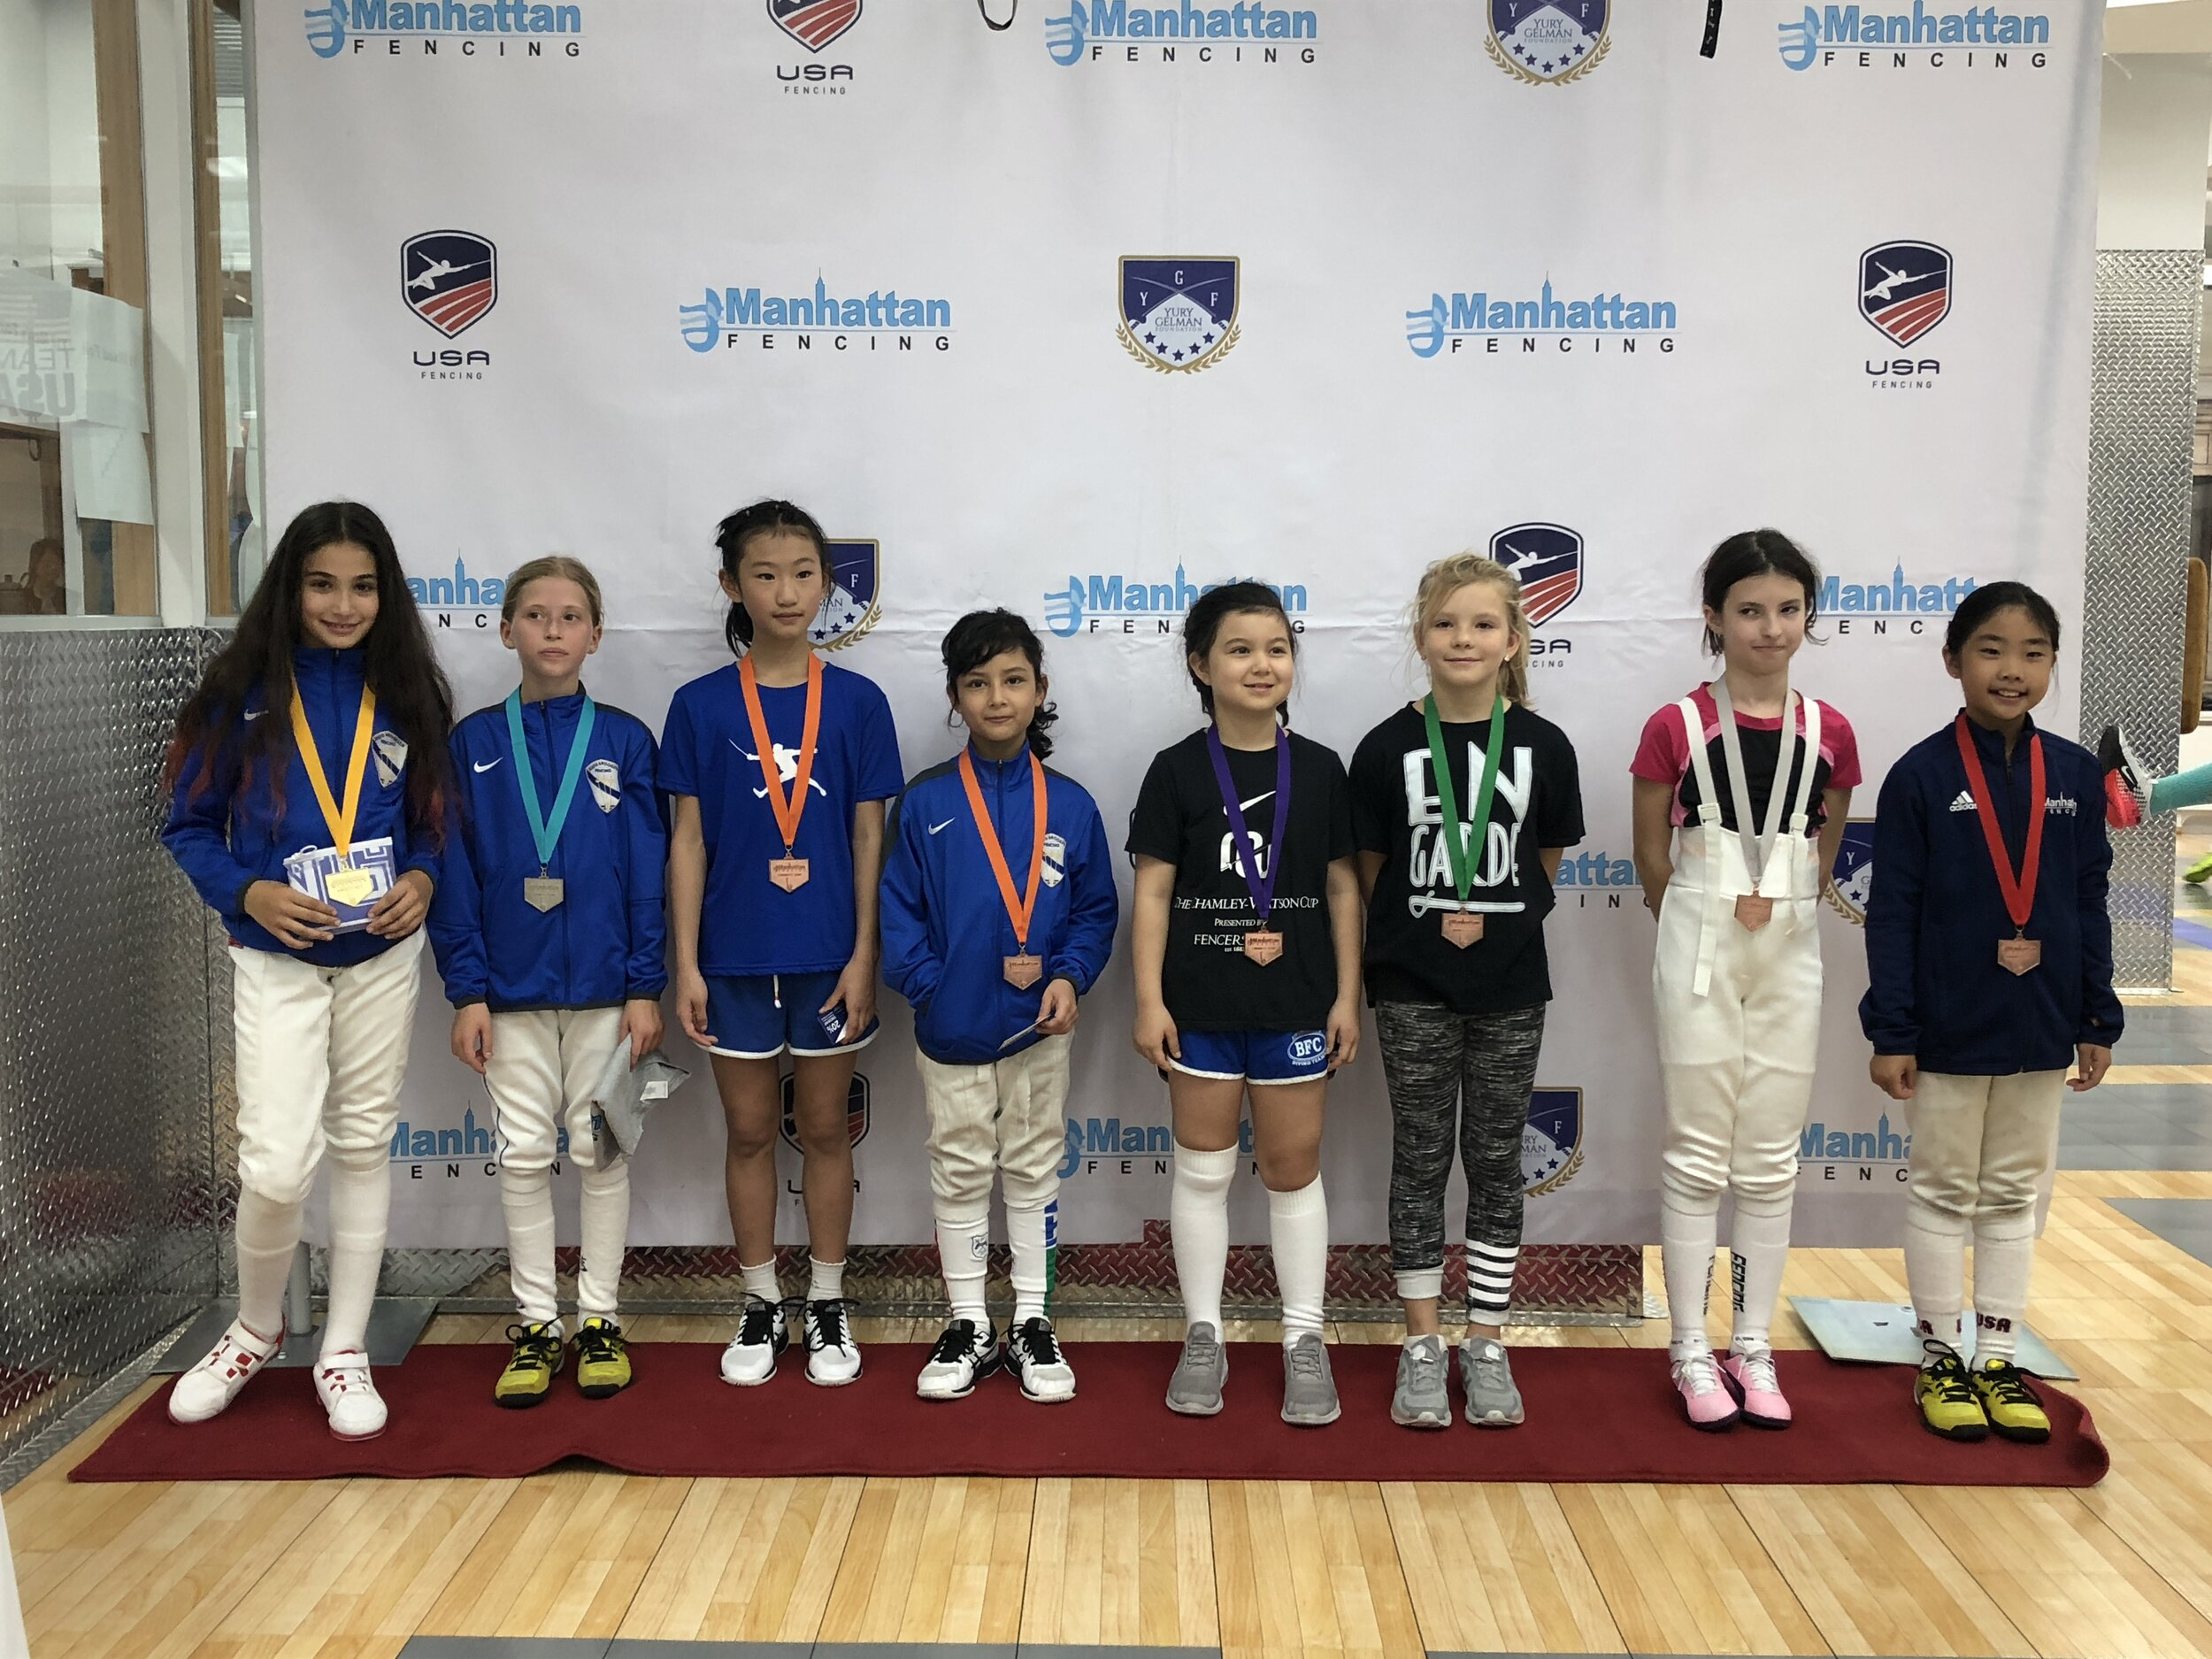 MFC Liberty Cup Y10 women's foil  Sara Amr Hossny 1st place Mariia Yurkova 2nd place  Emily Cascone 3rd place